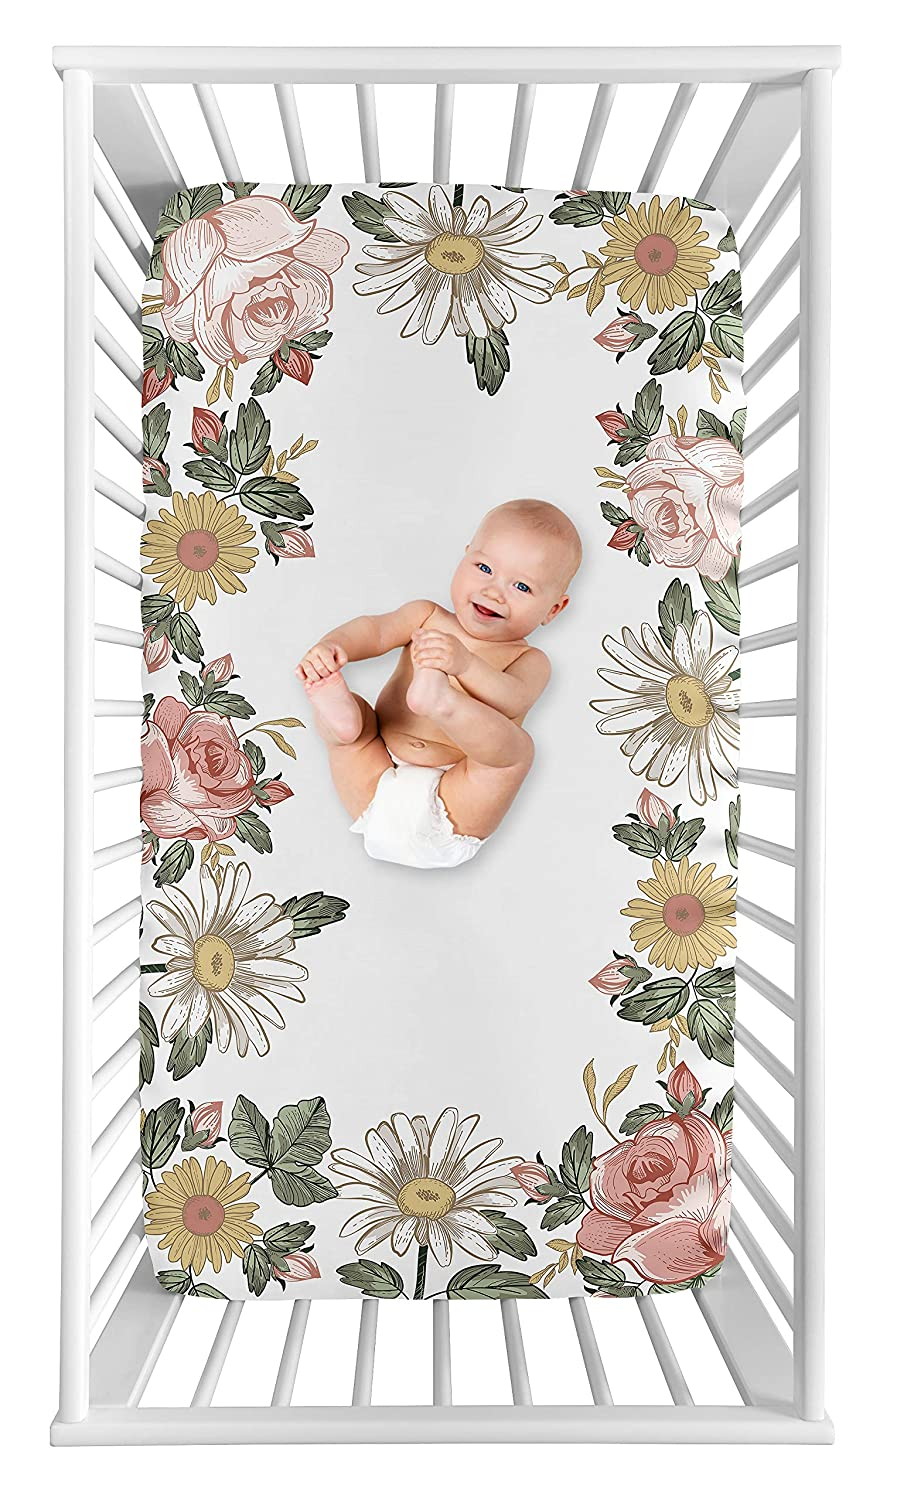 Sweet Jojo Designs Vintage Floral Boho Girl Fitted Crib Sheet Baby or Toddler Bed Nursery Photo Op - Blush Pink, Yellow and Green Shabby Chic Rose Flower Farmhouse